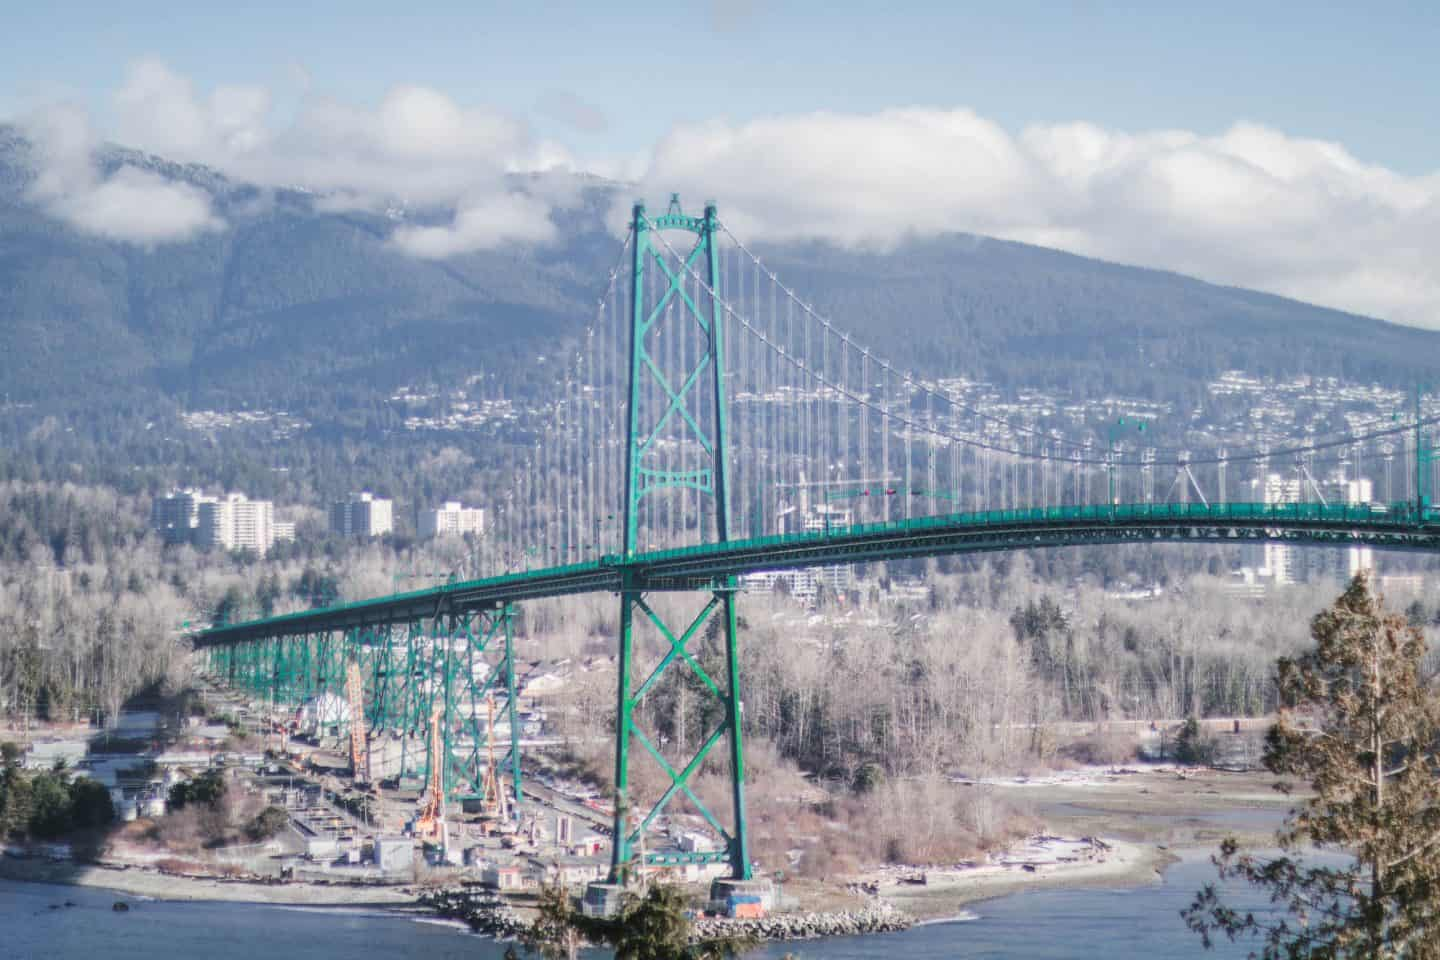 A scenic view of the Lion's Gate Bridge from Stanley Park in Vancouver, British Columbia